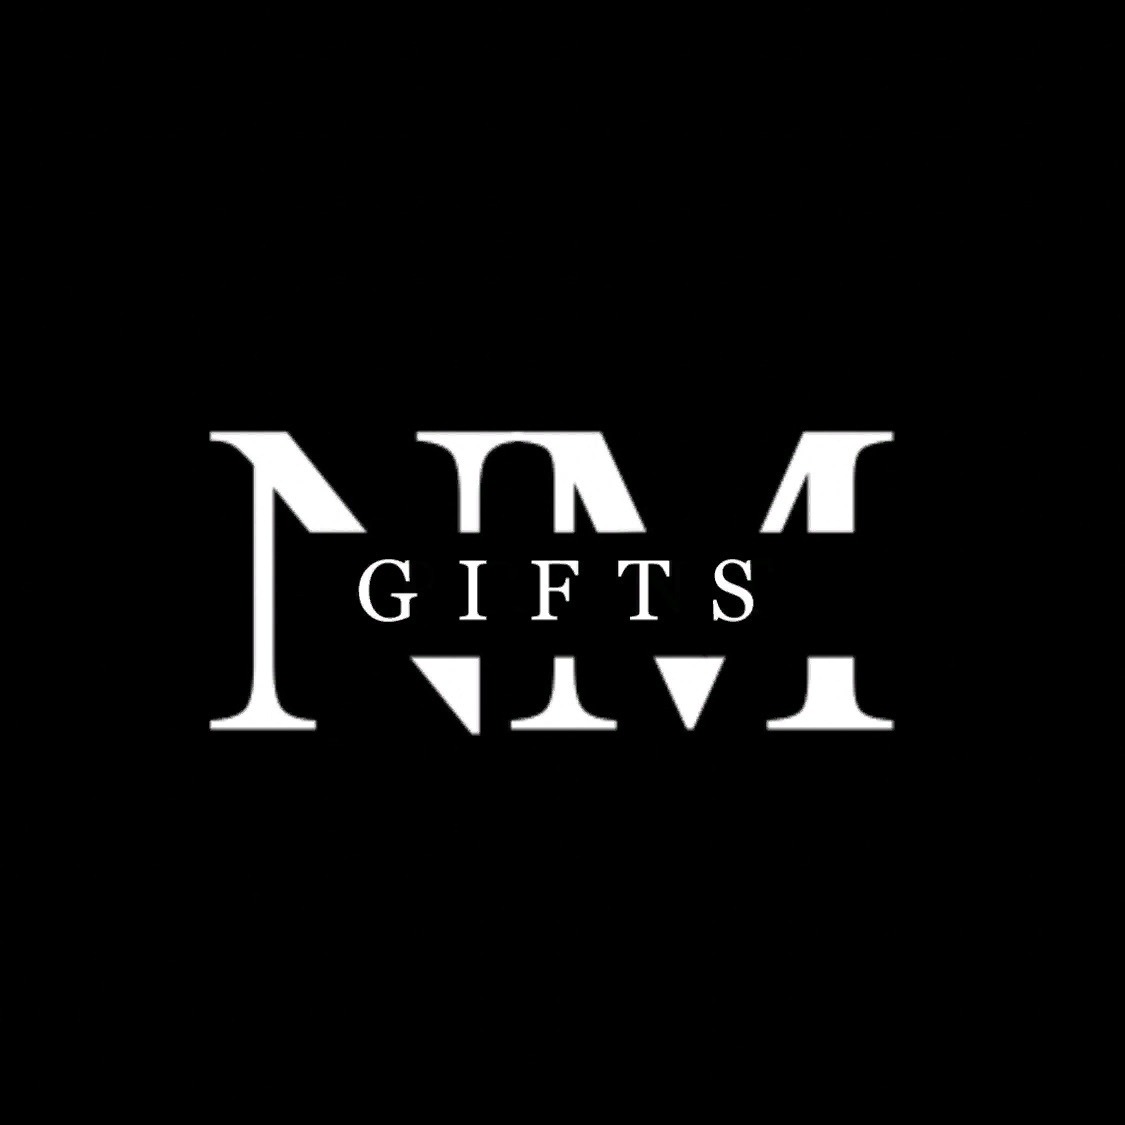 NmGifts